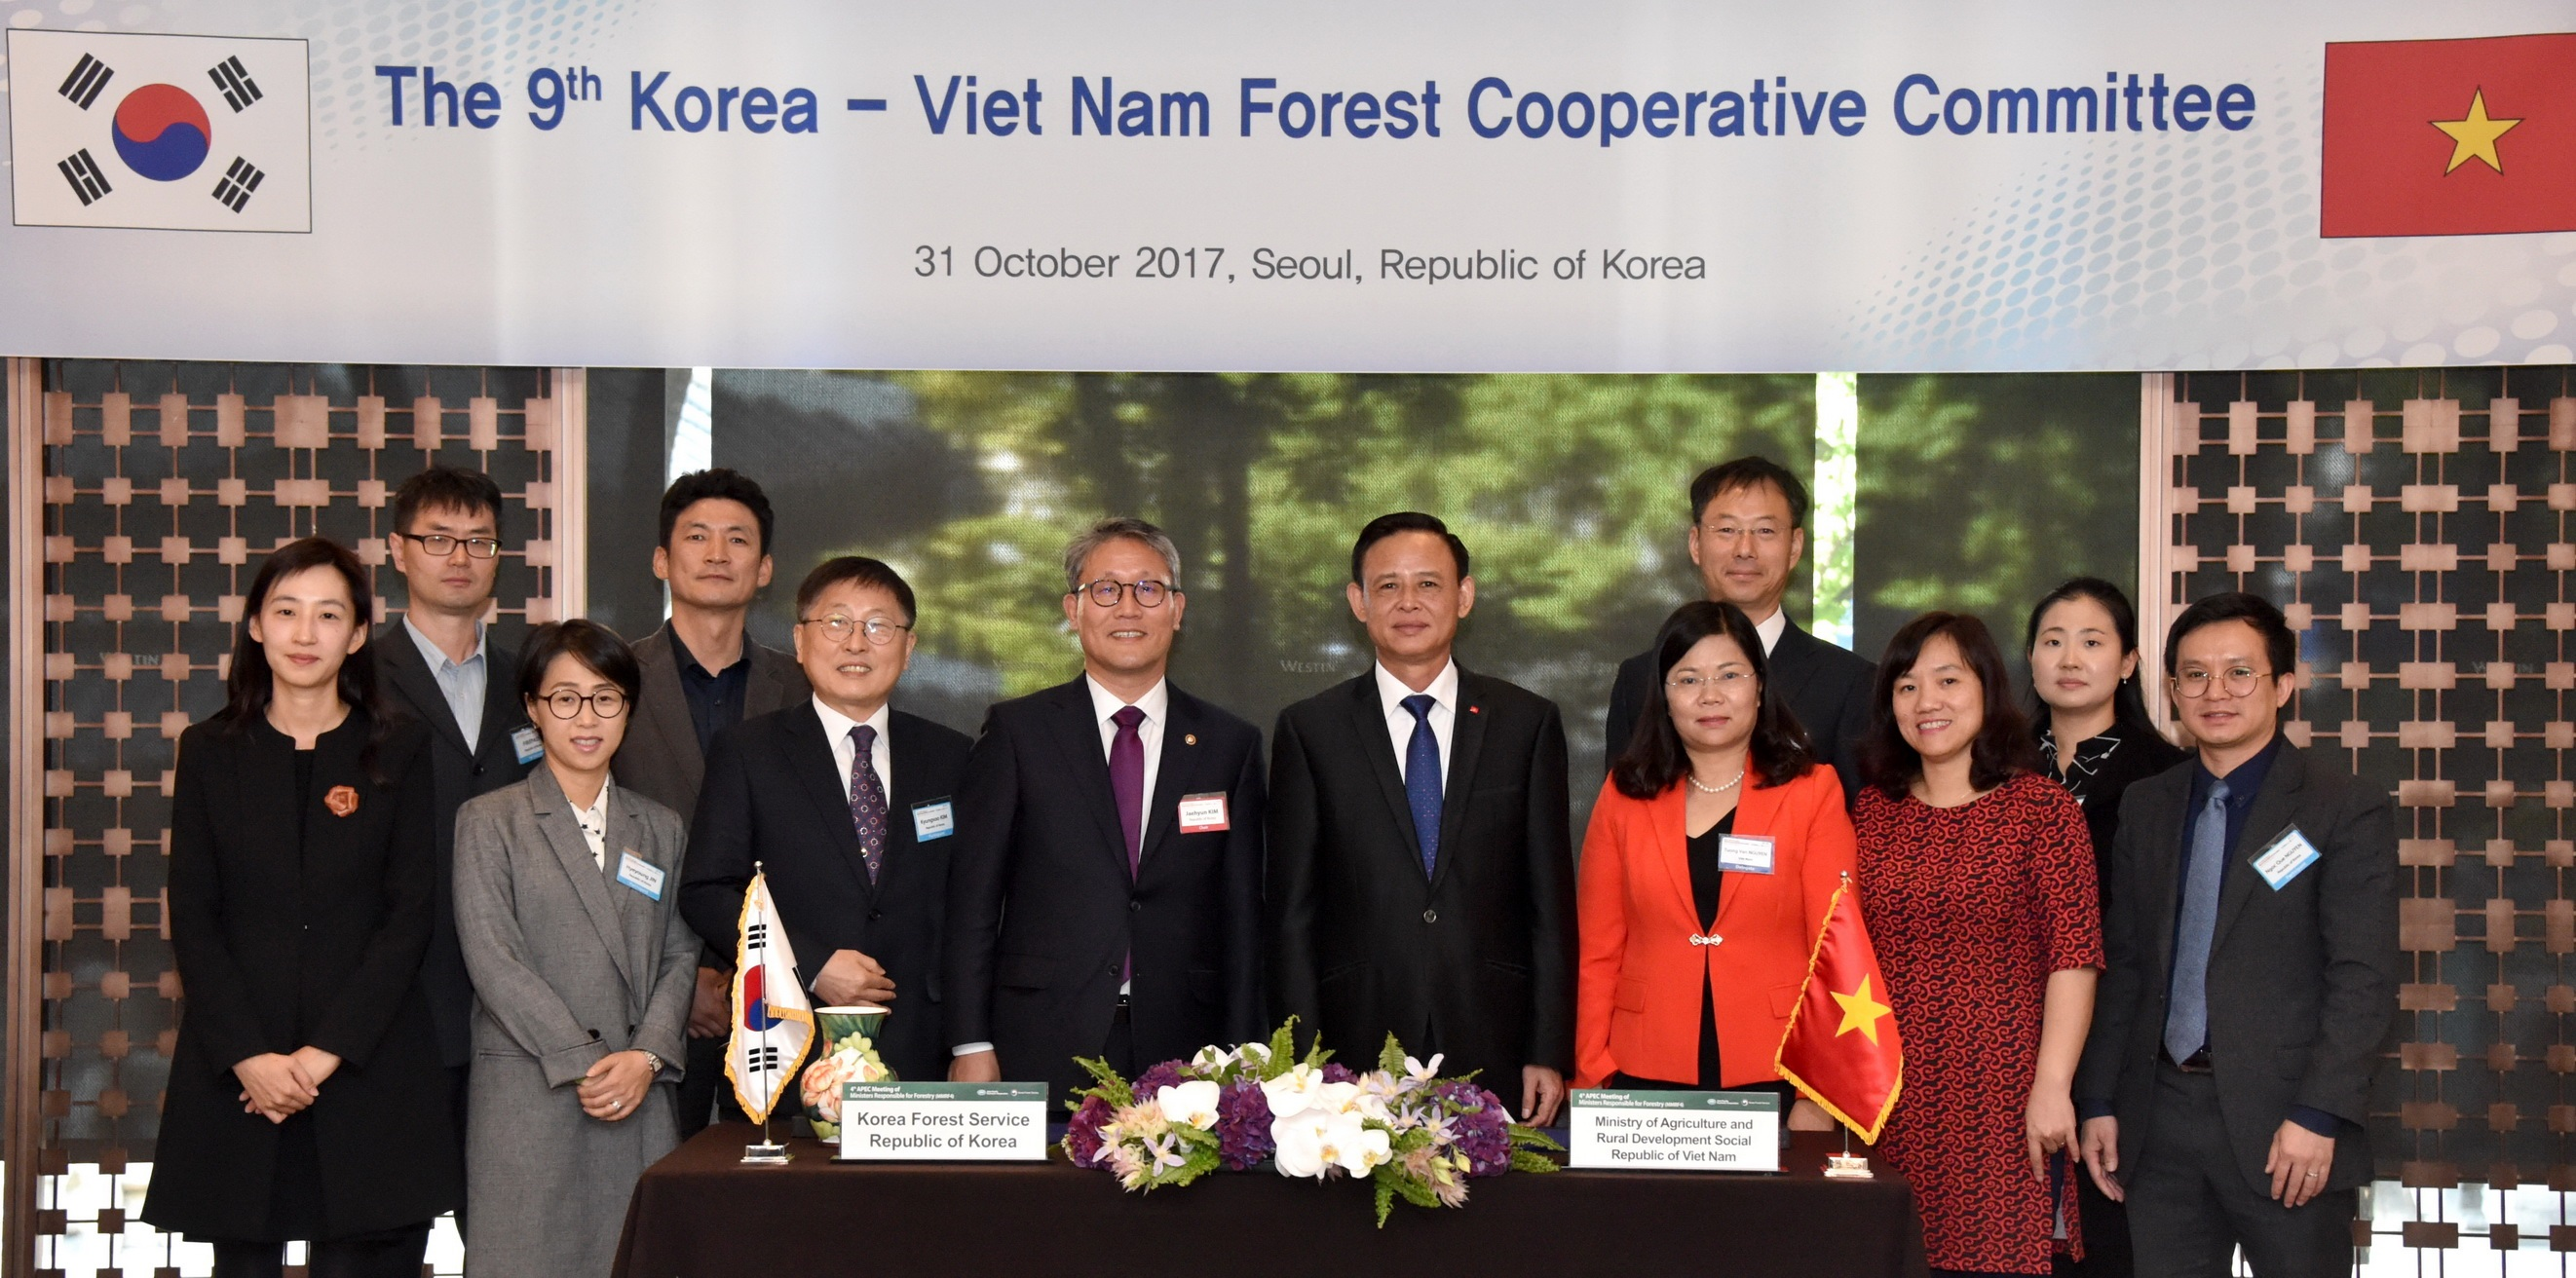 9th Korea-Viet Nam Forest Cooperative Committee